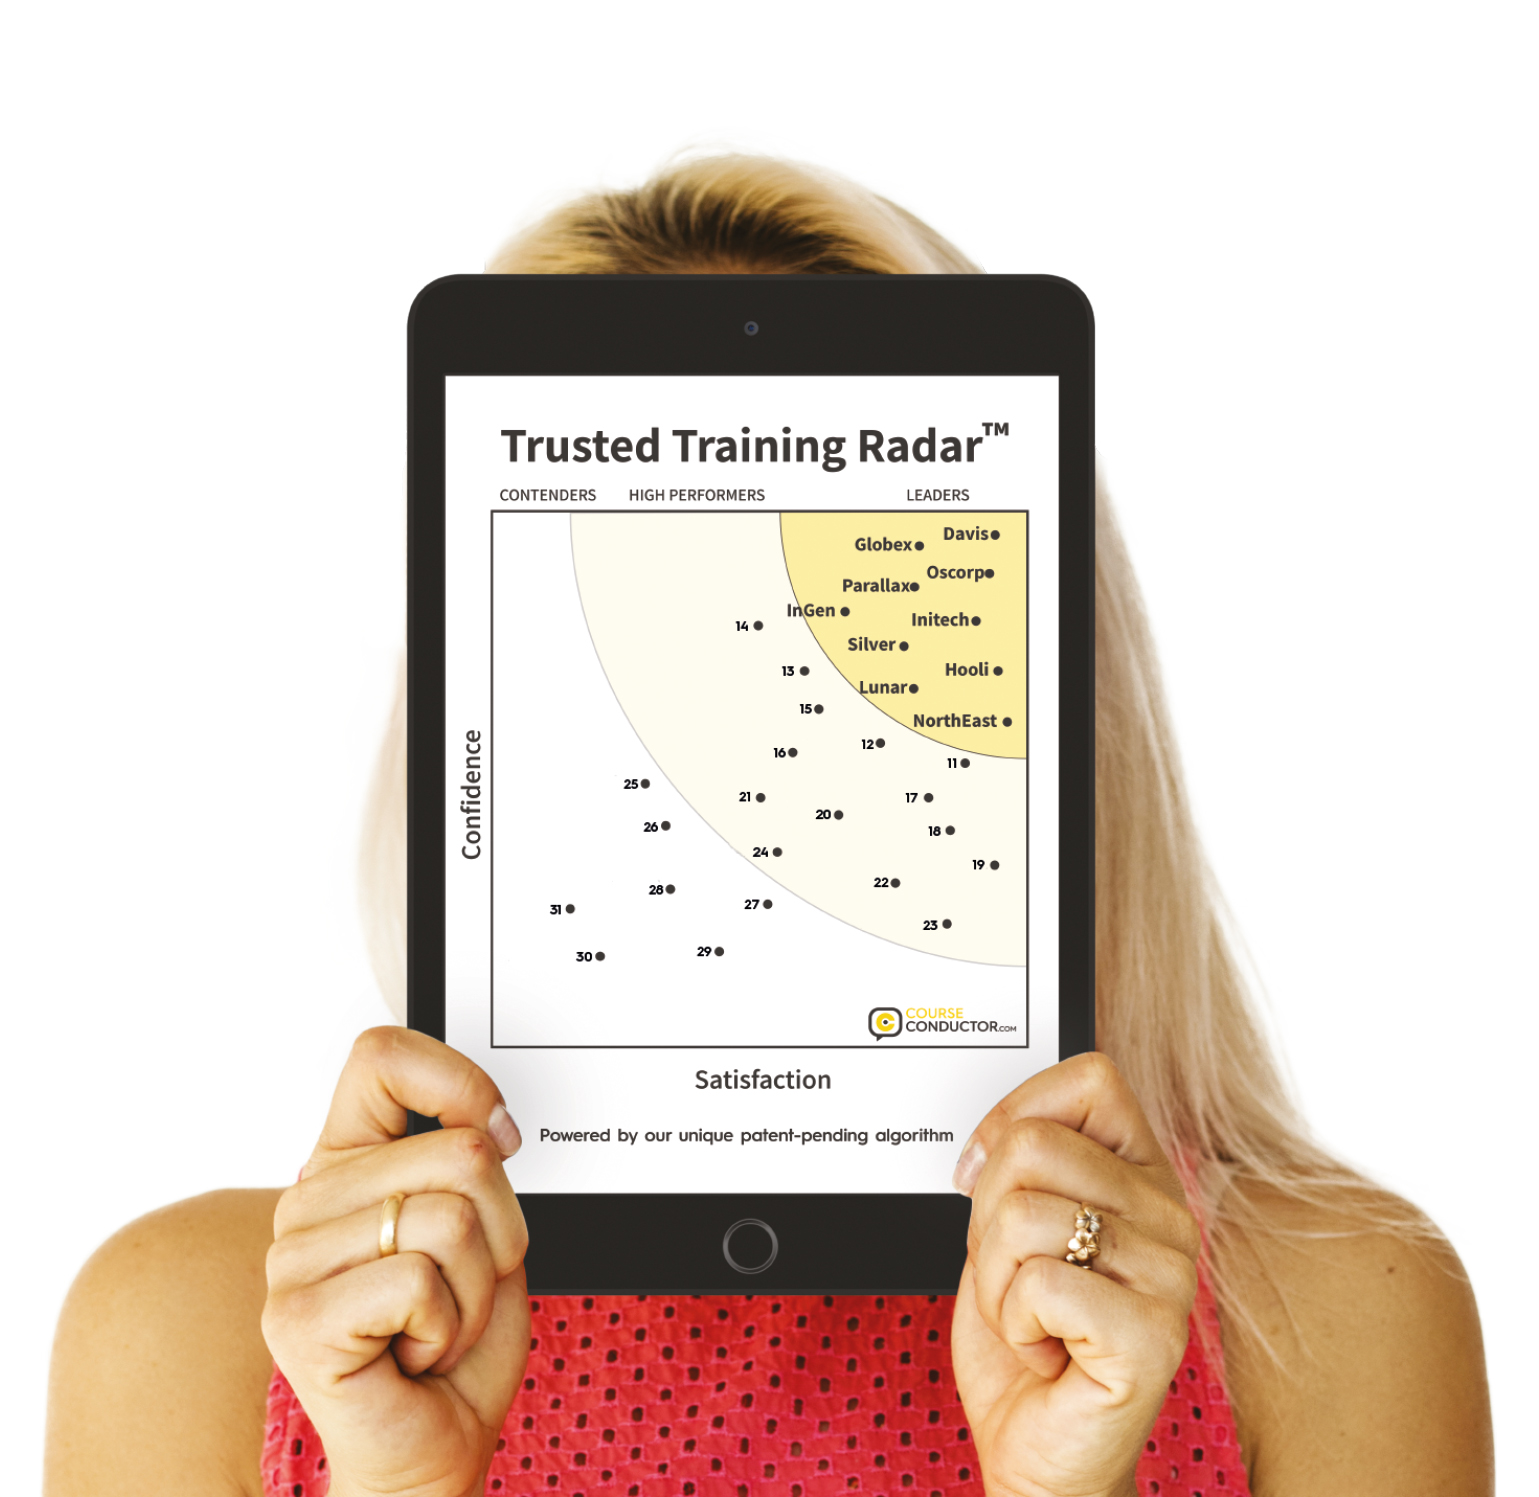 Course Conductor measures the trustworthiness of training providers and their courses